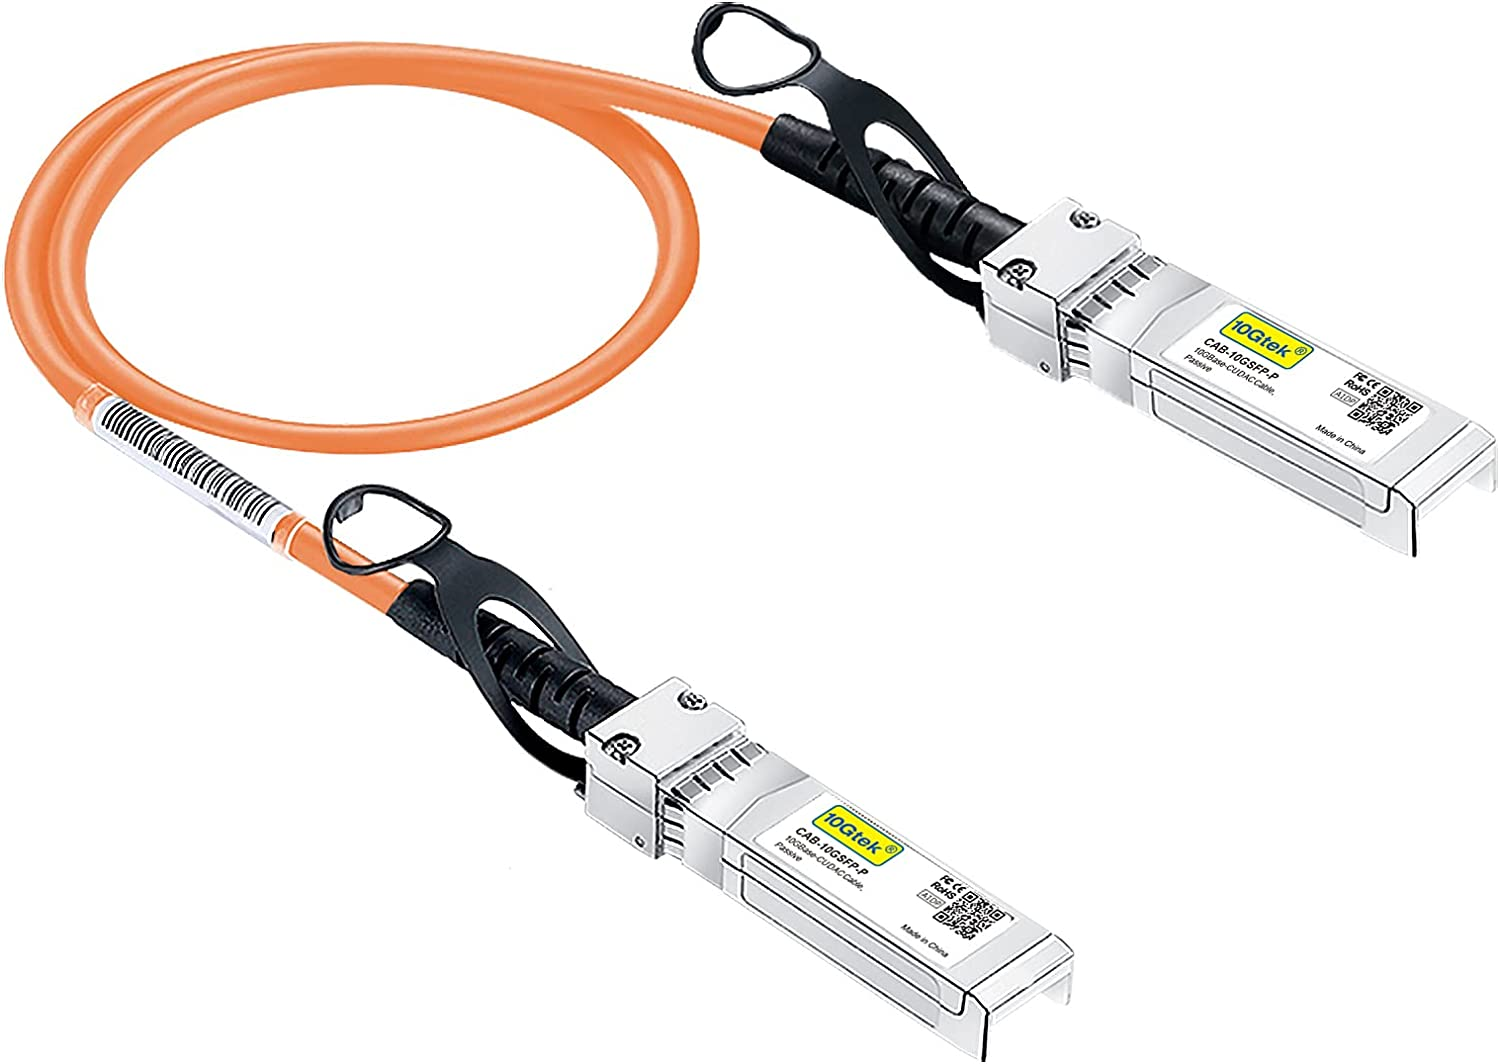 [Orange] Colored 10G SFP+ DAC Cable - Twinax SFP Cable for Ubiquiti UniFi Devices, 0.3-Meter(1ft)